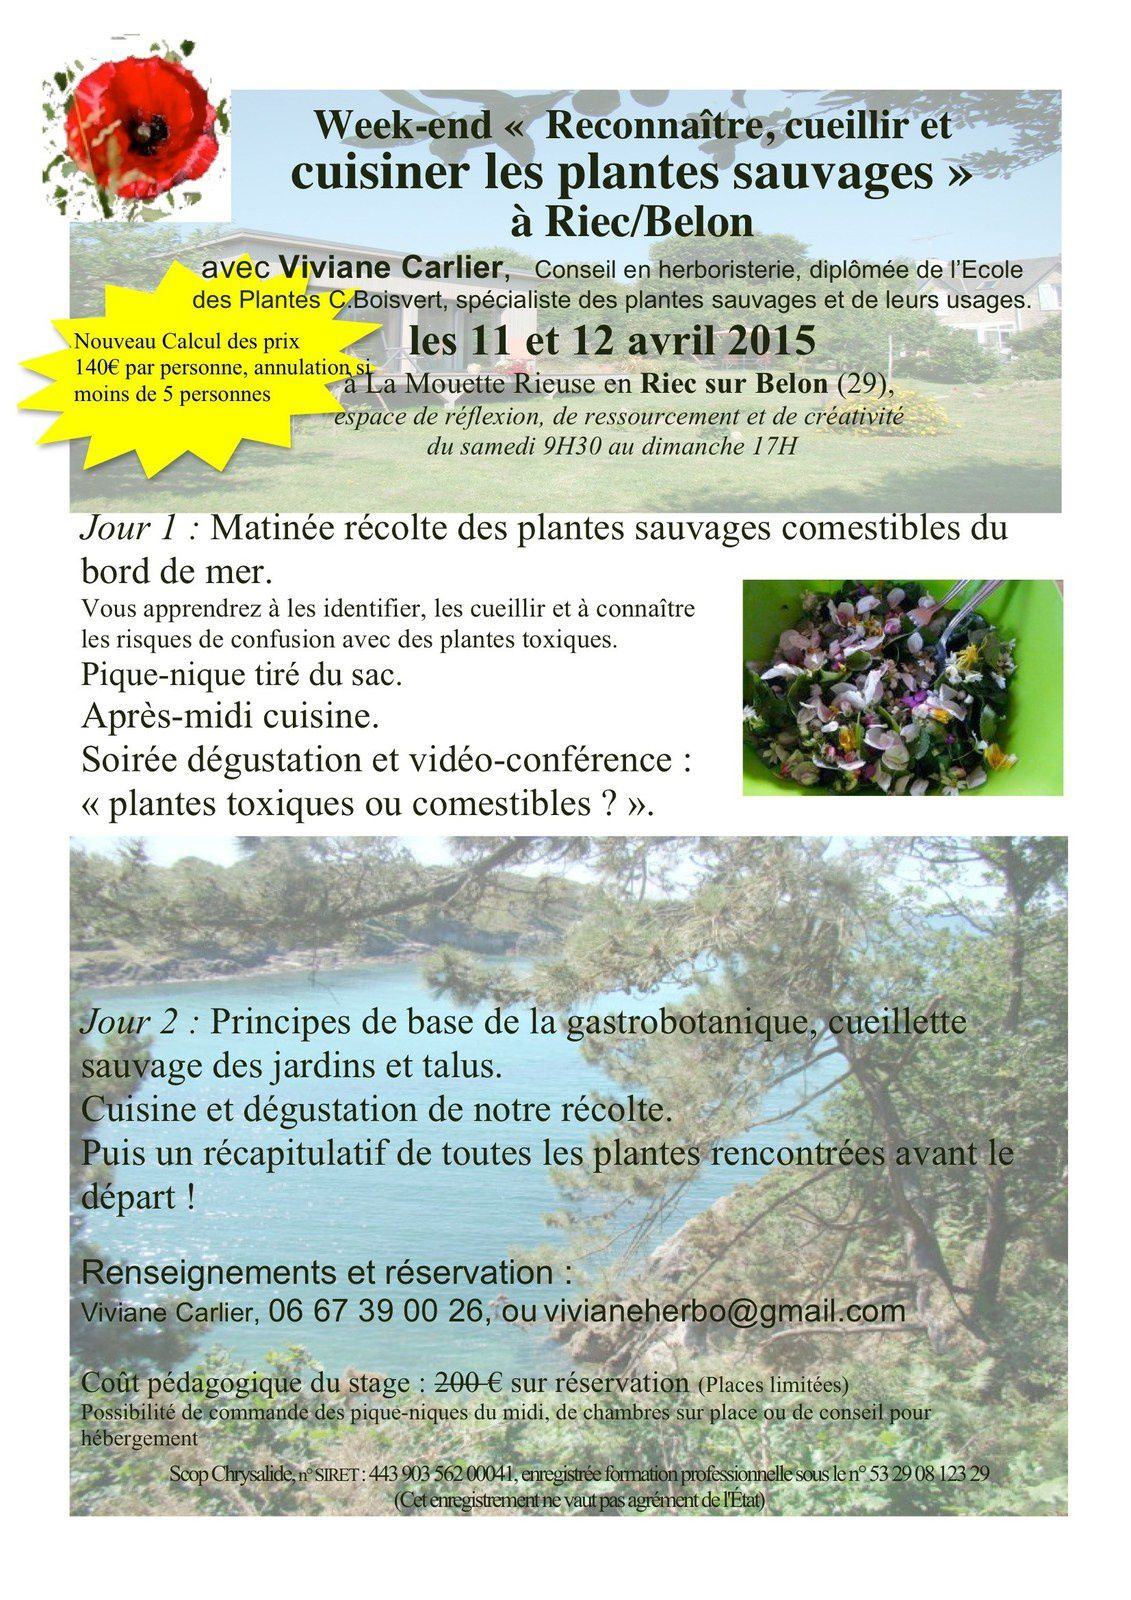 Week-end plantes comestibles à Riec sur Belon